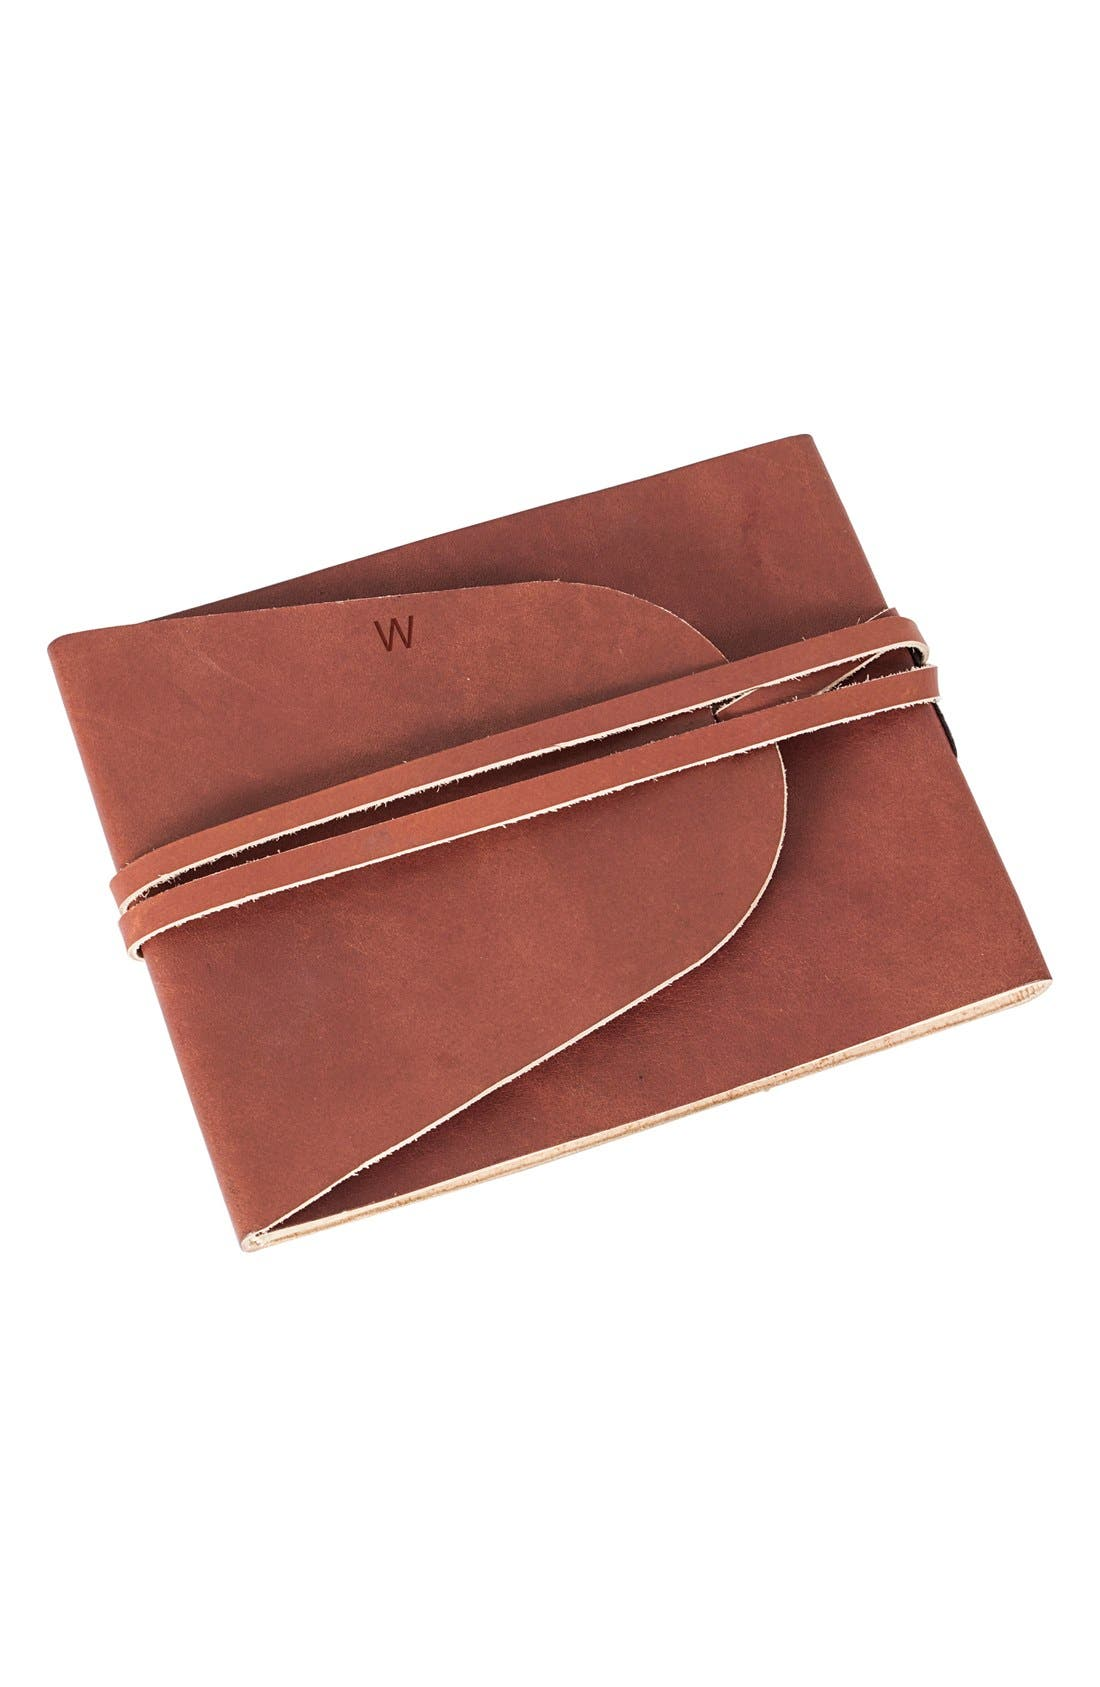 Monogram Leather Guest Book,                             Alternate thumbnail 2, color,                             223